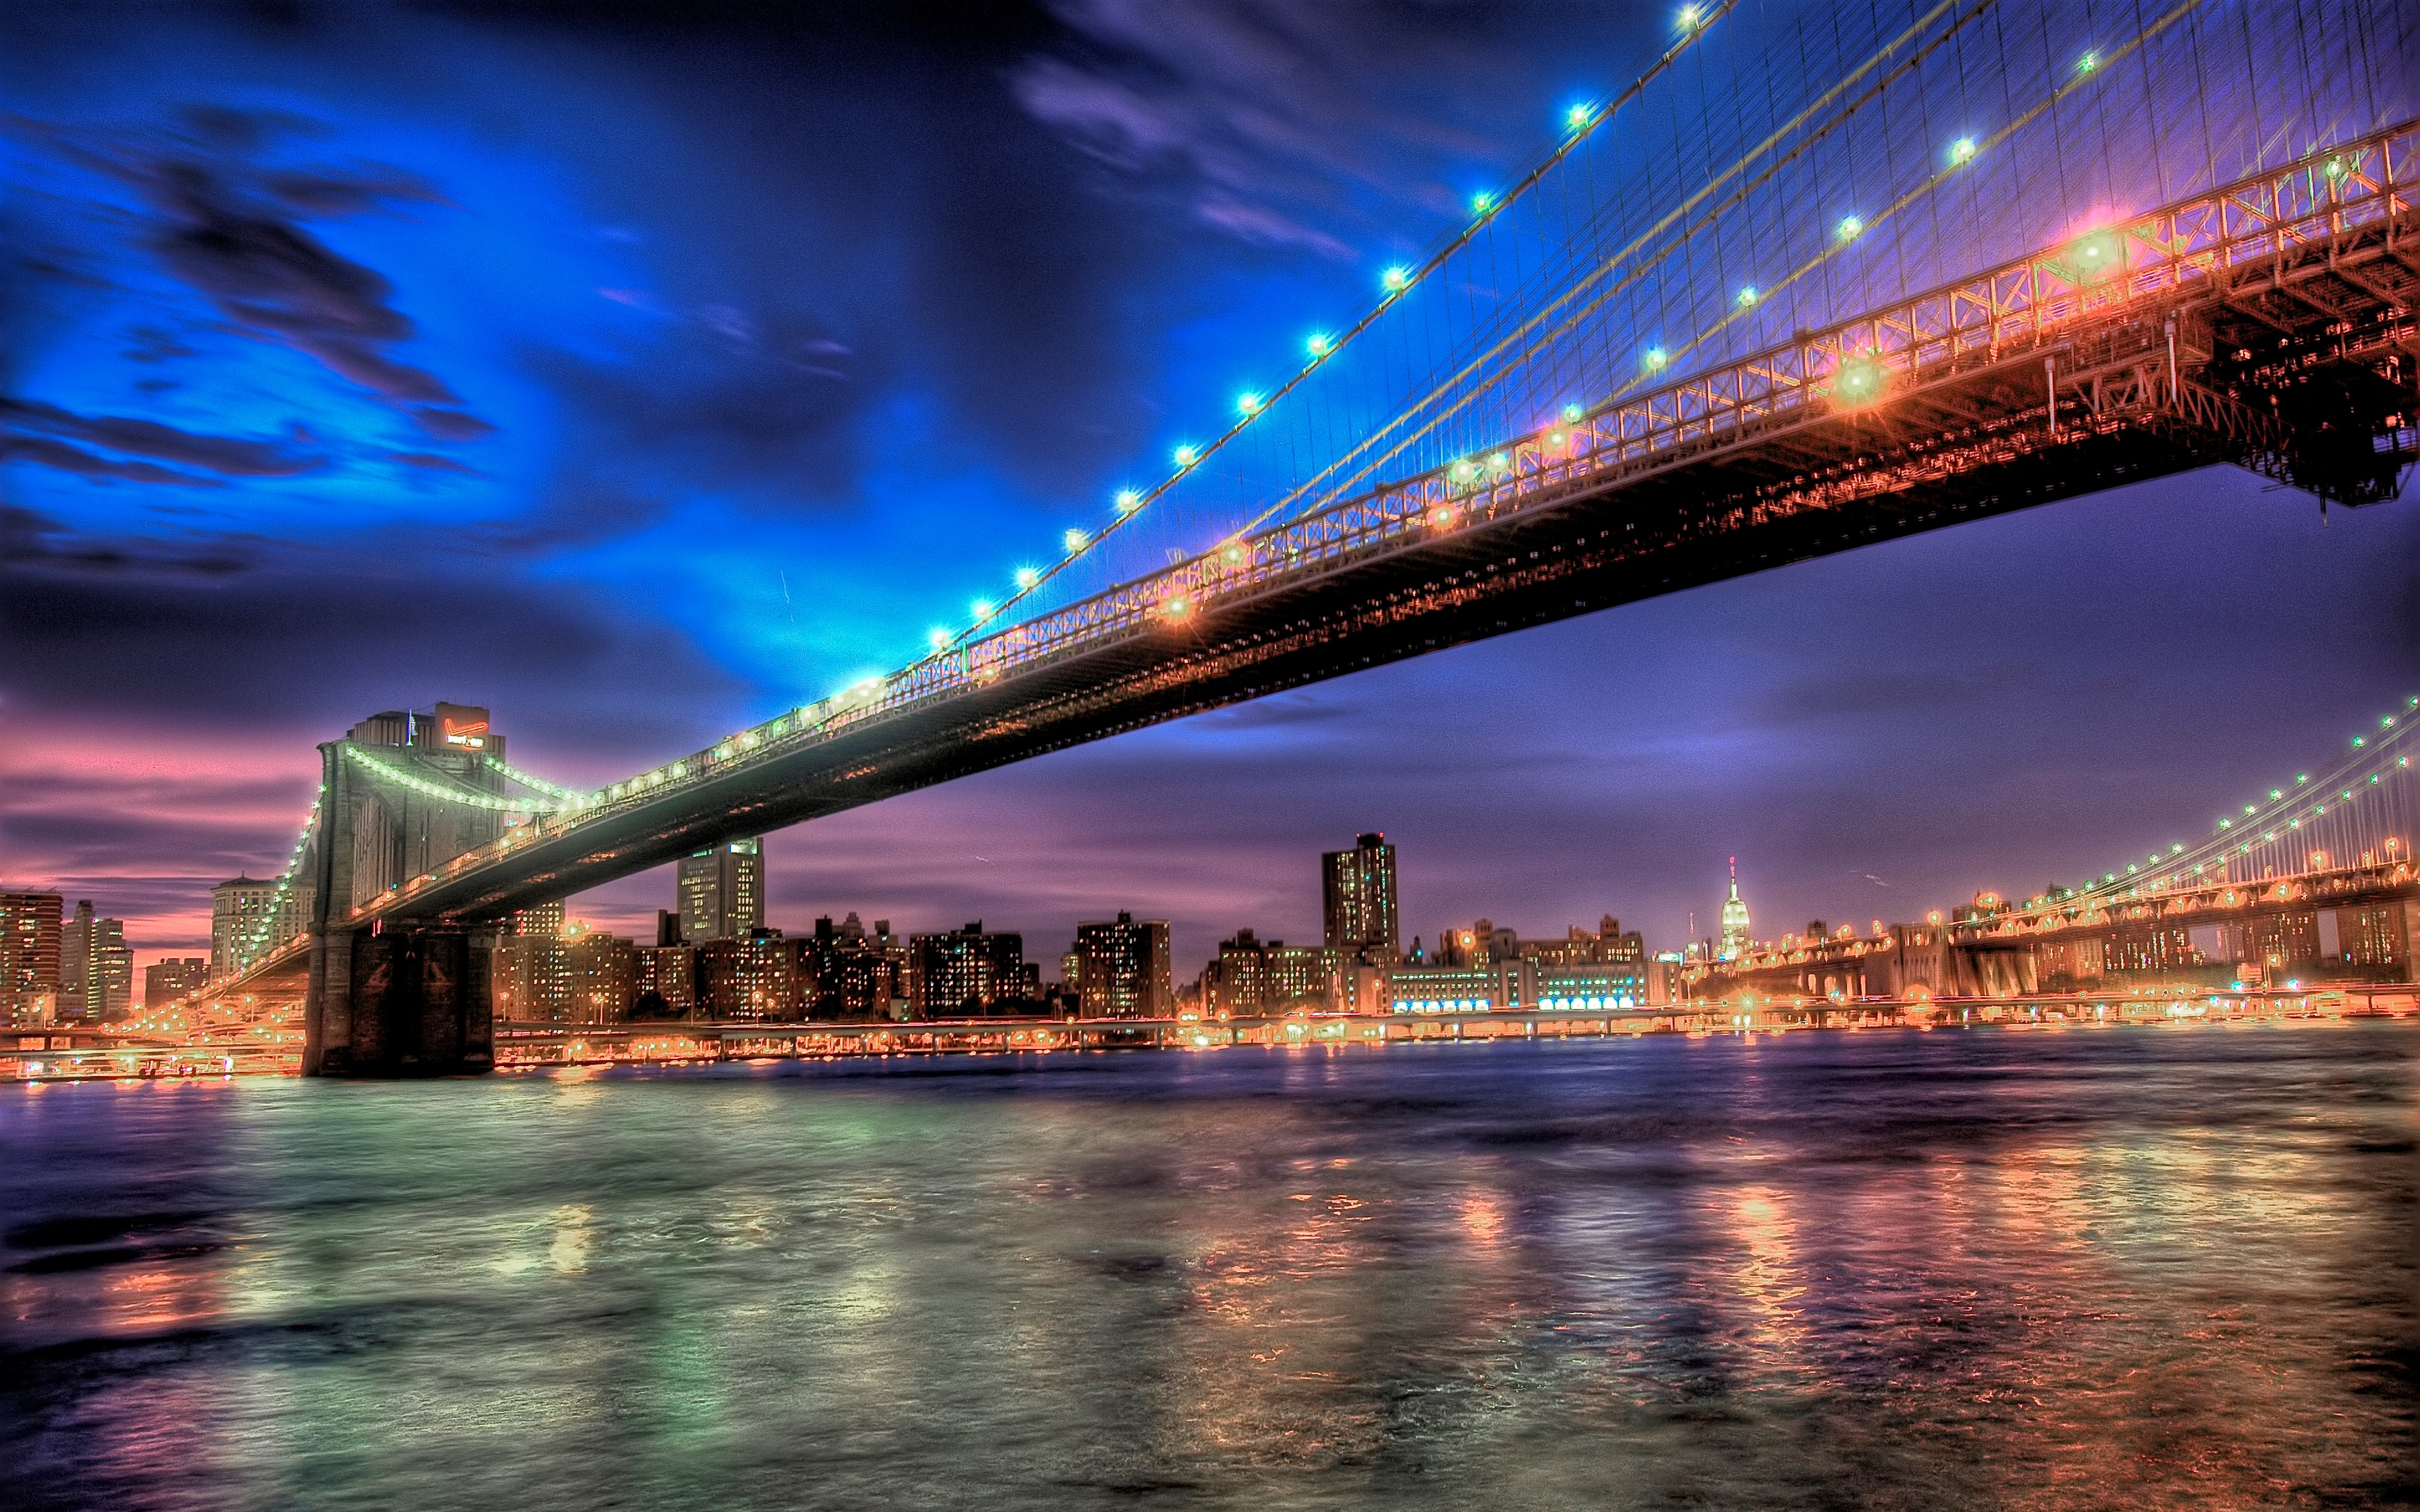 Brooklyn Bridge 4k Ultra Hd Wallpaper High Quality Walls